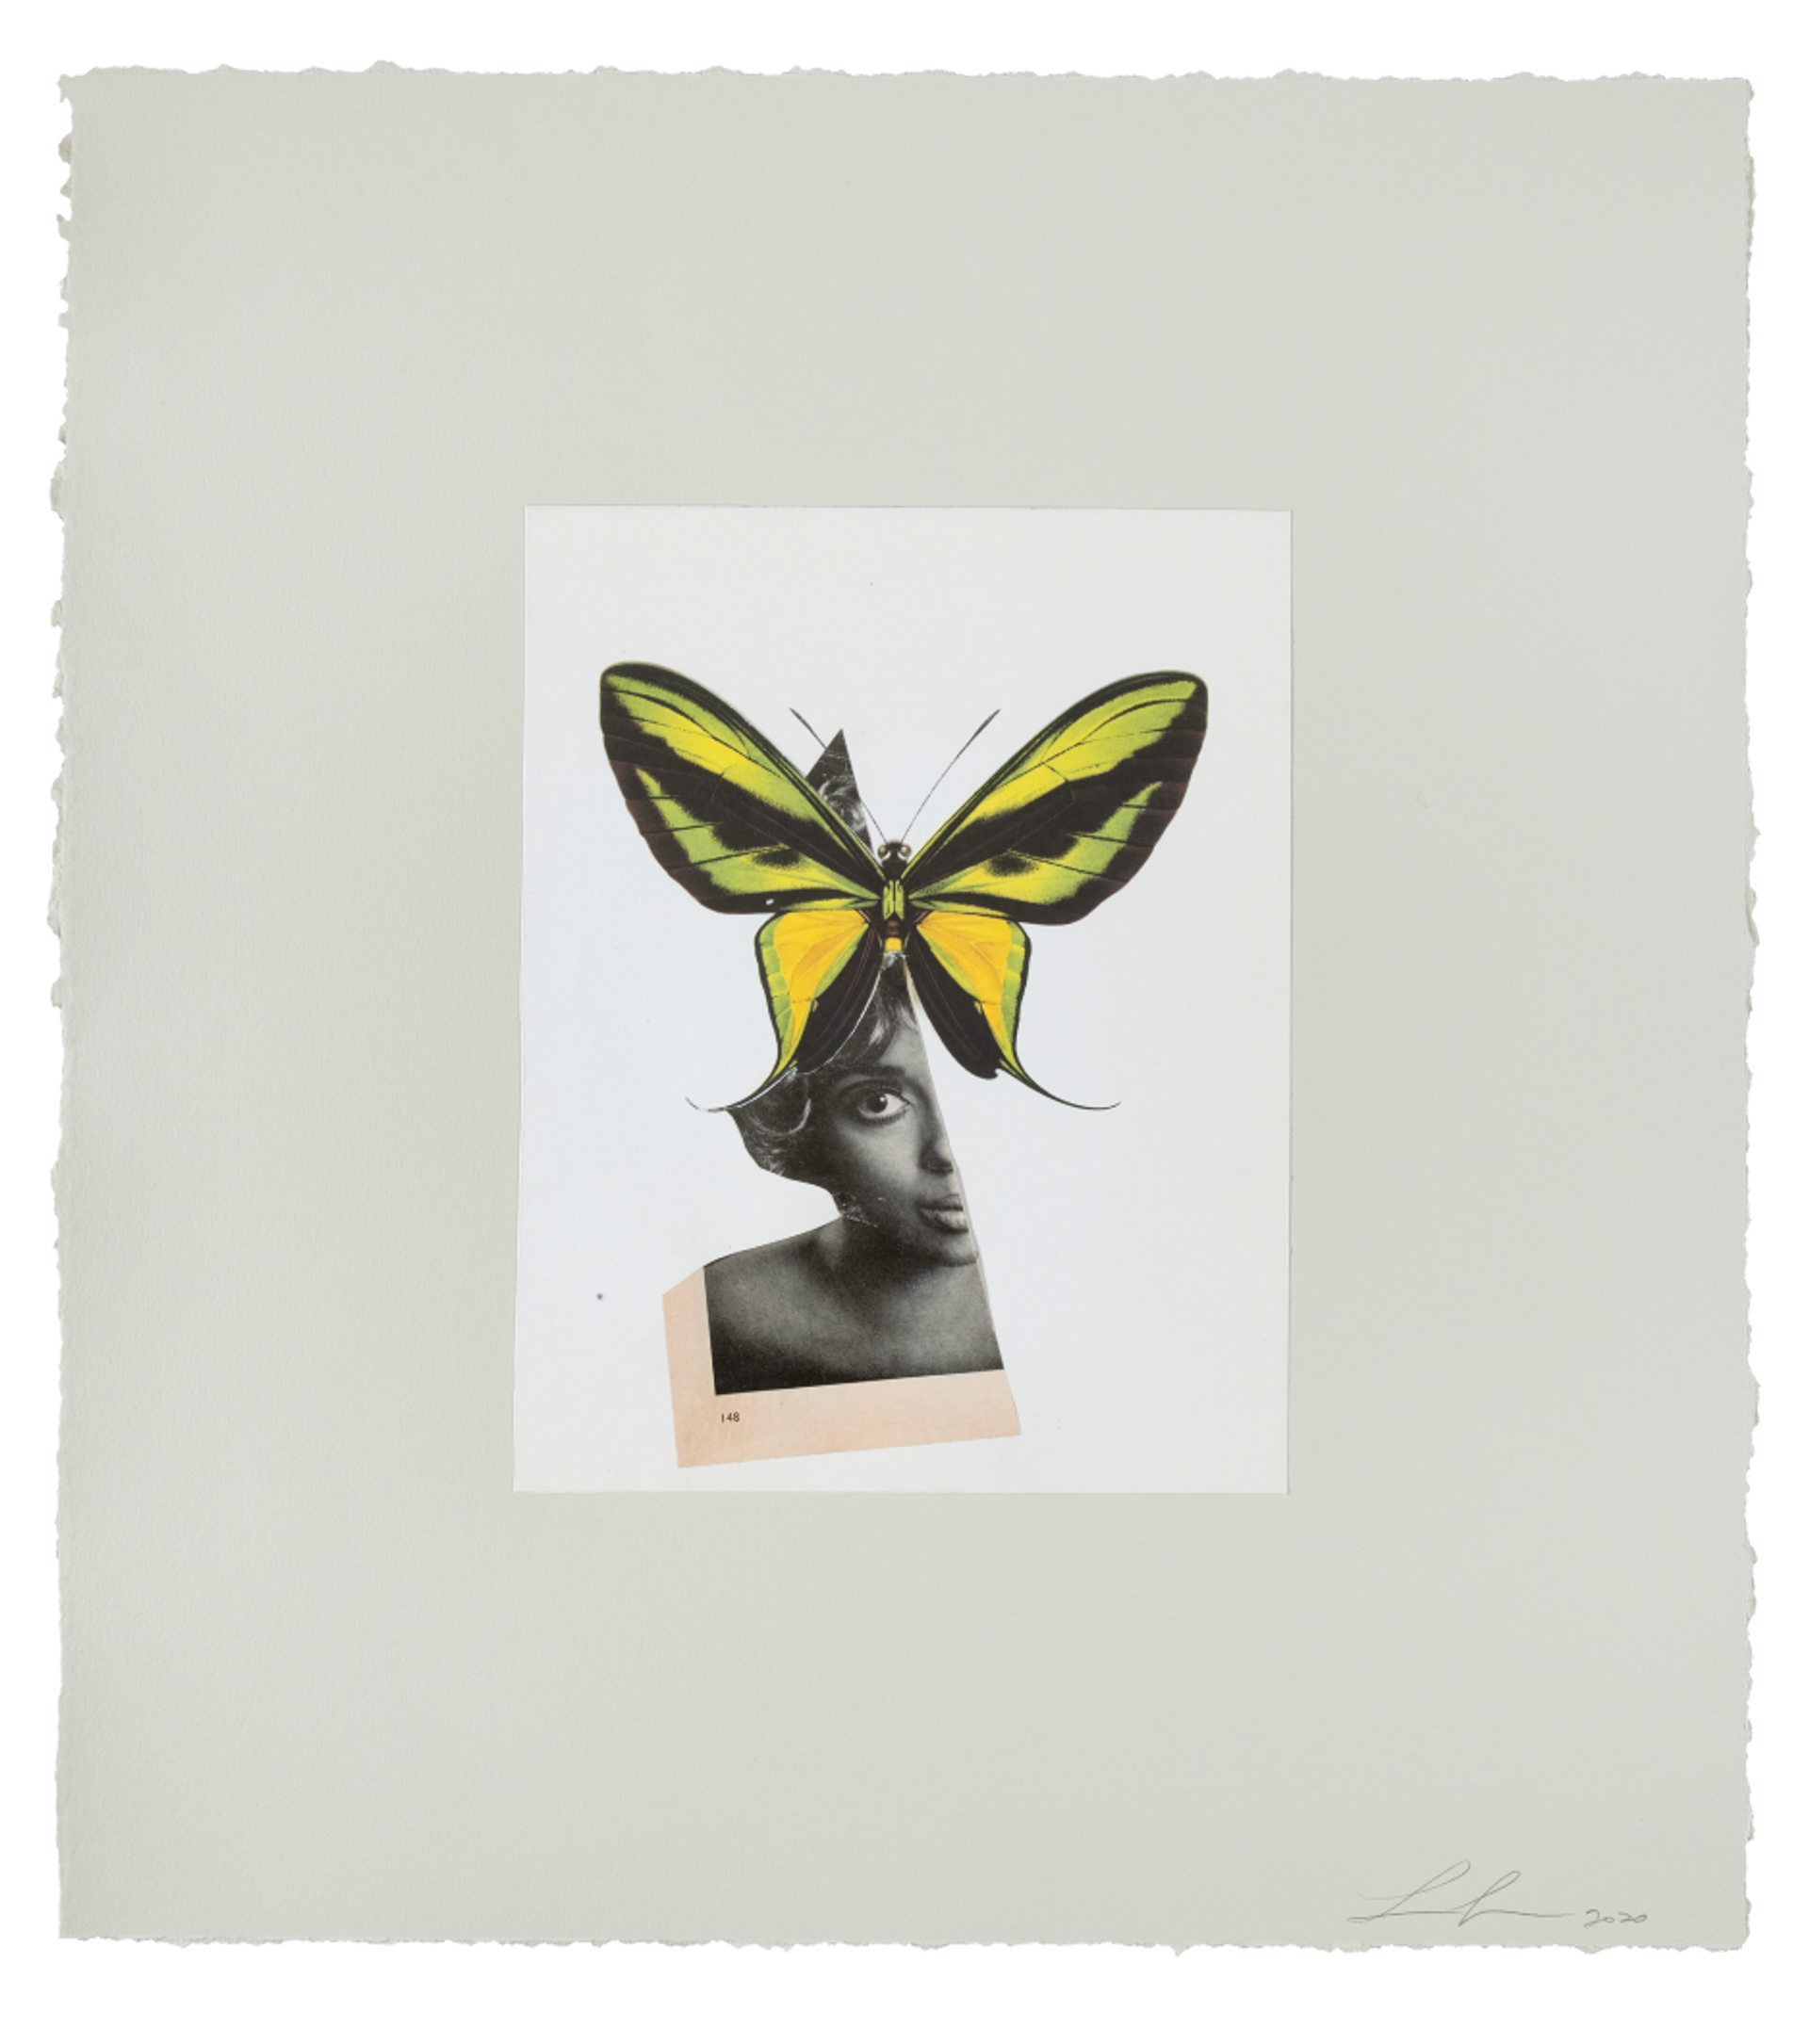 Lorna Simpson, Queen Butterfly (2020) © Lorna Simpson. Courtesy the artist and Hauser & Wirth. Photo by James Wang